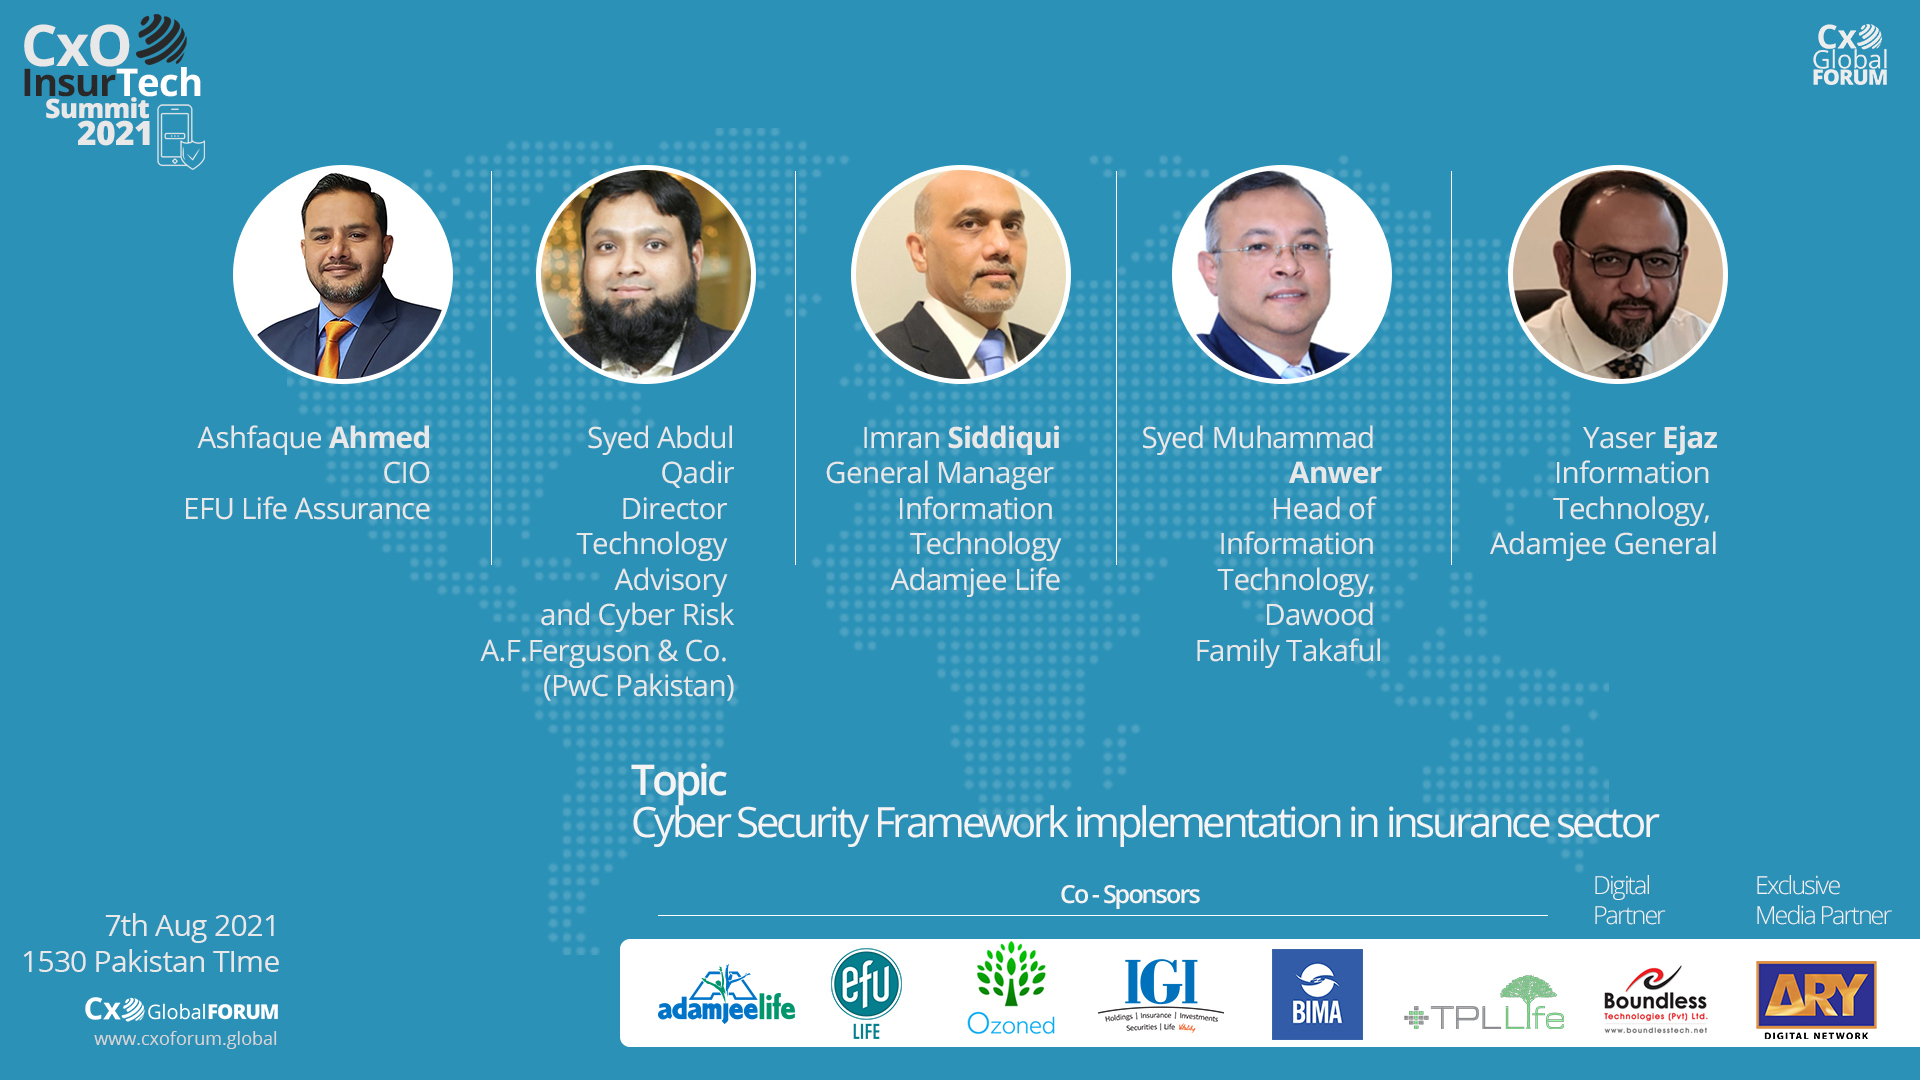 Cyber Security Framework implementation in insurance sector